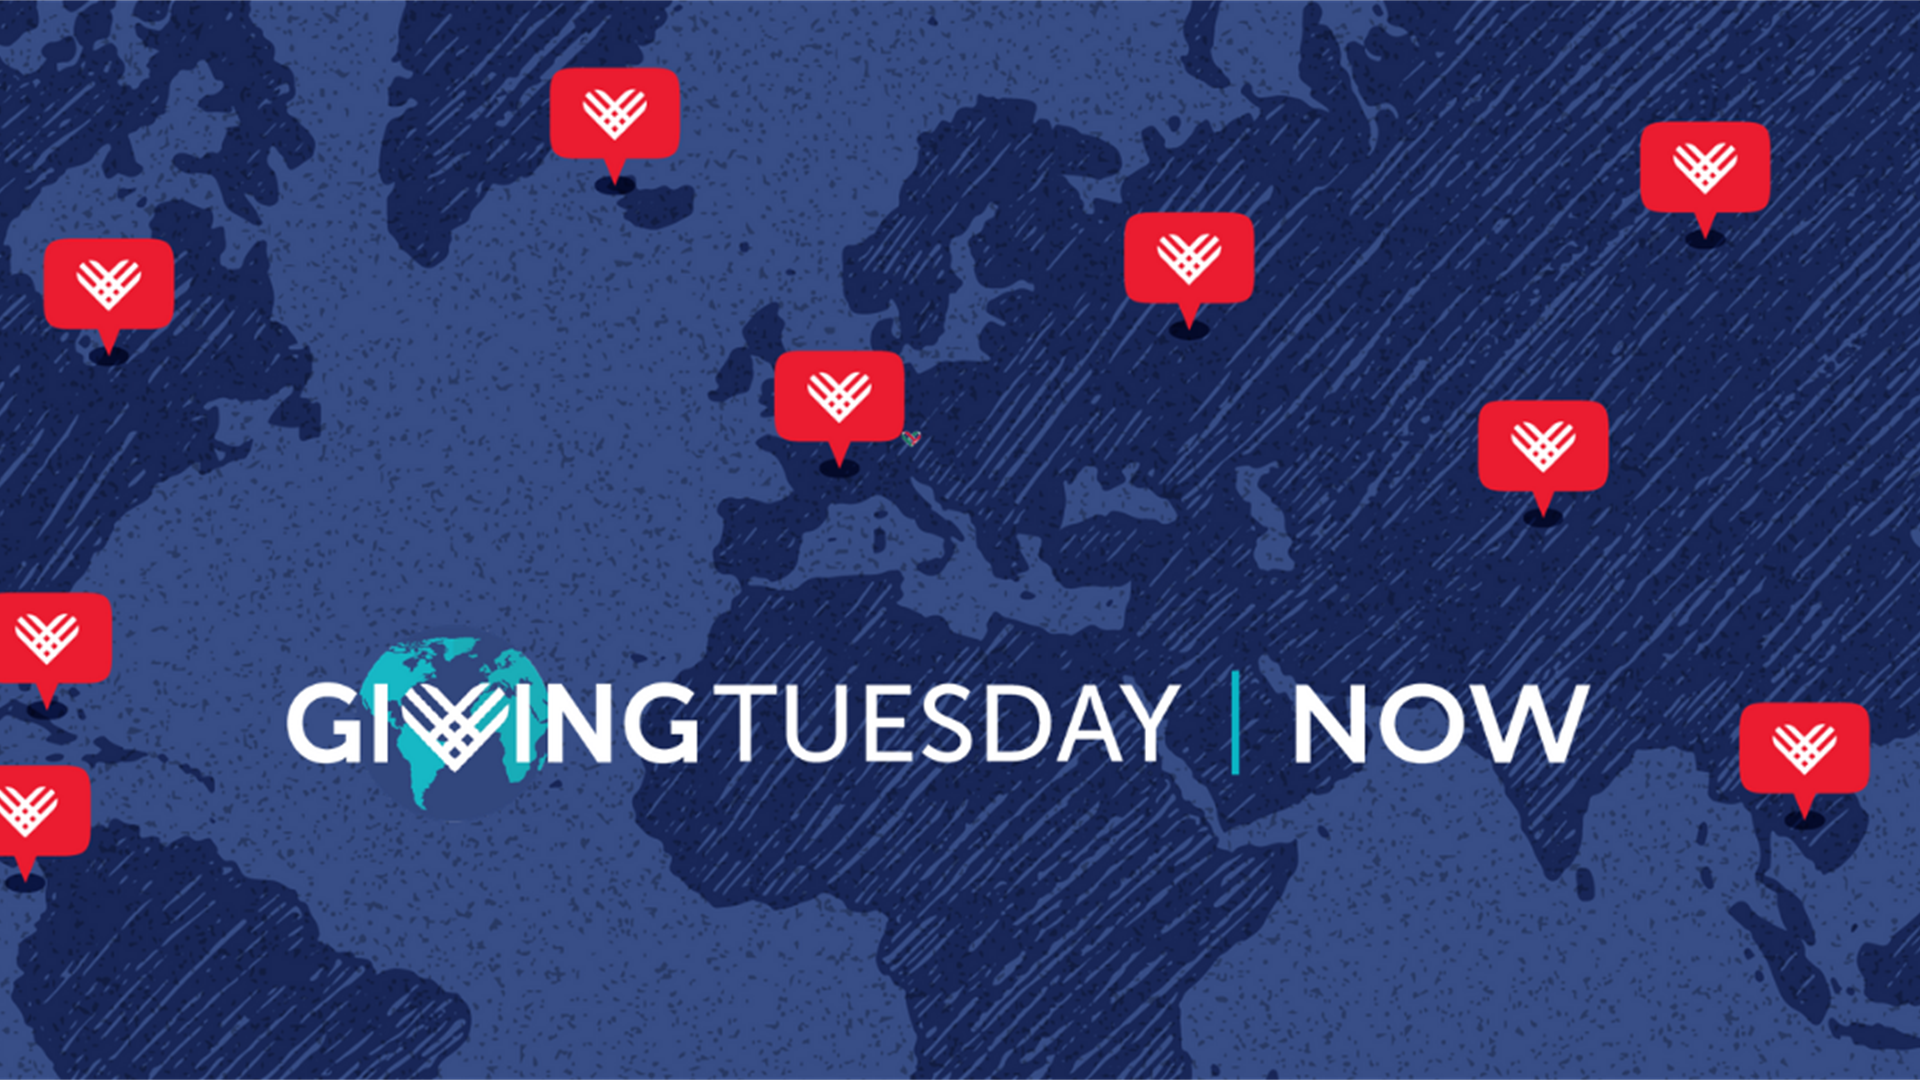 #Giving Tuesday Now